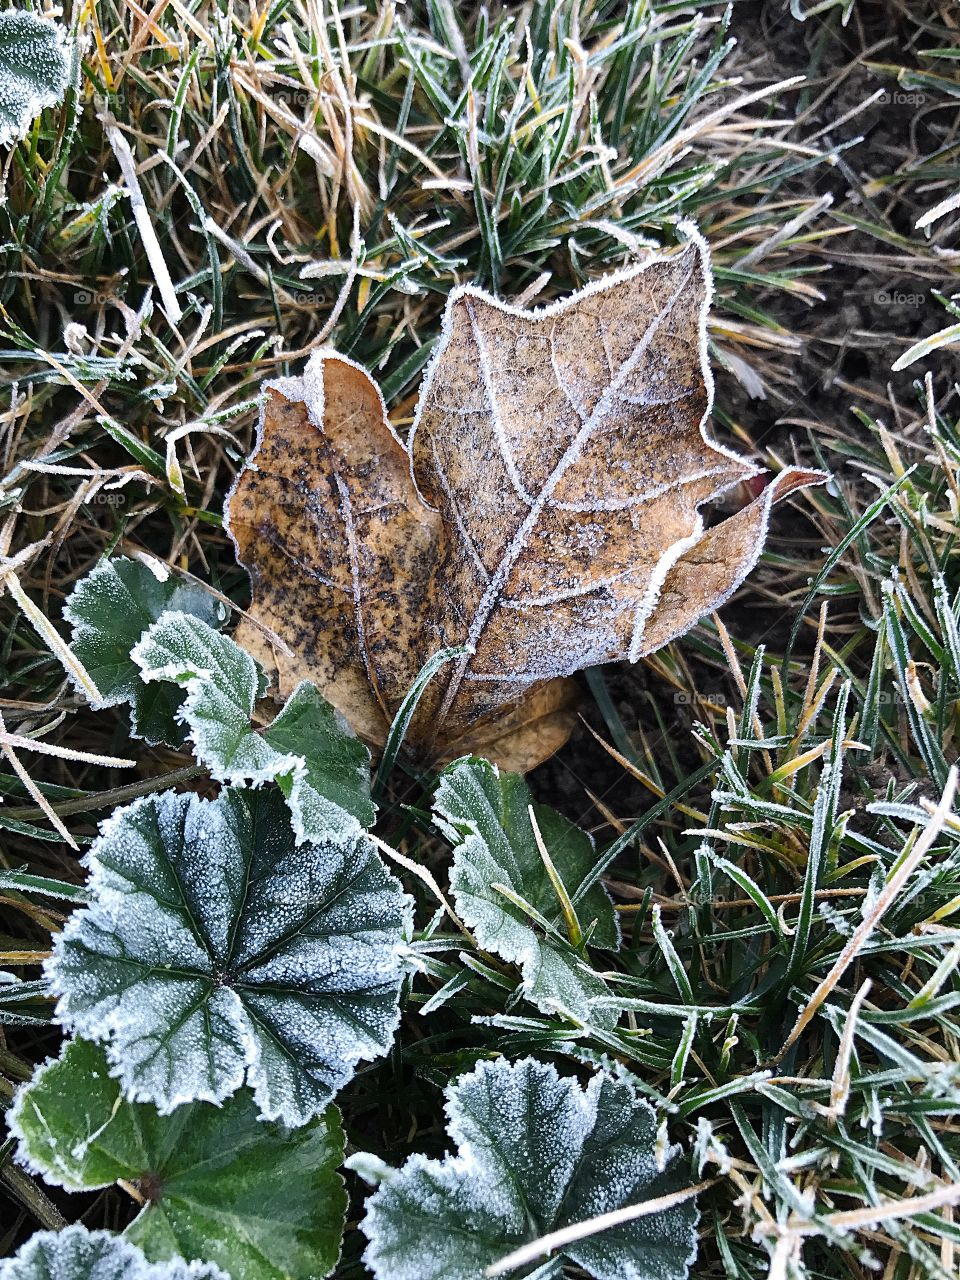 A dried maple leaf in the grass of a lawn frosted and iced over in the winter.